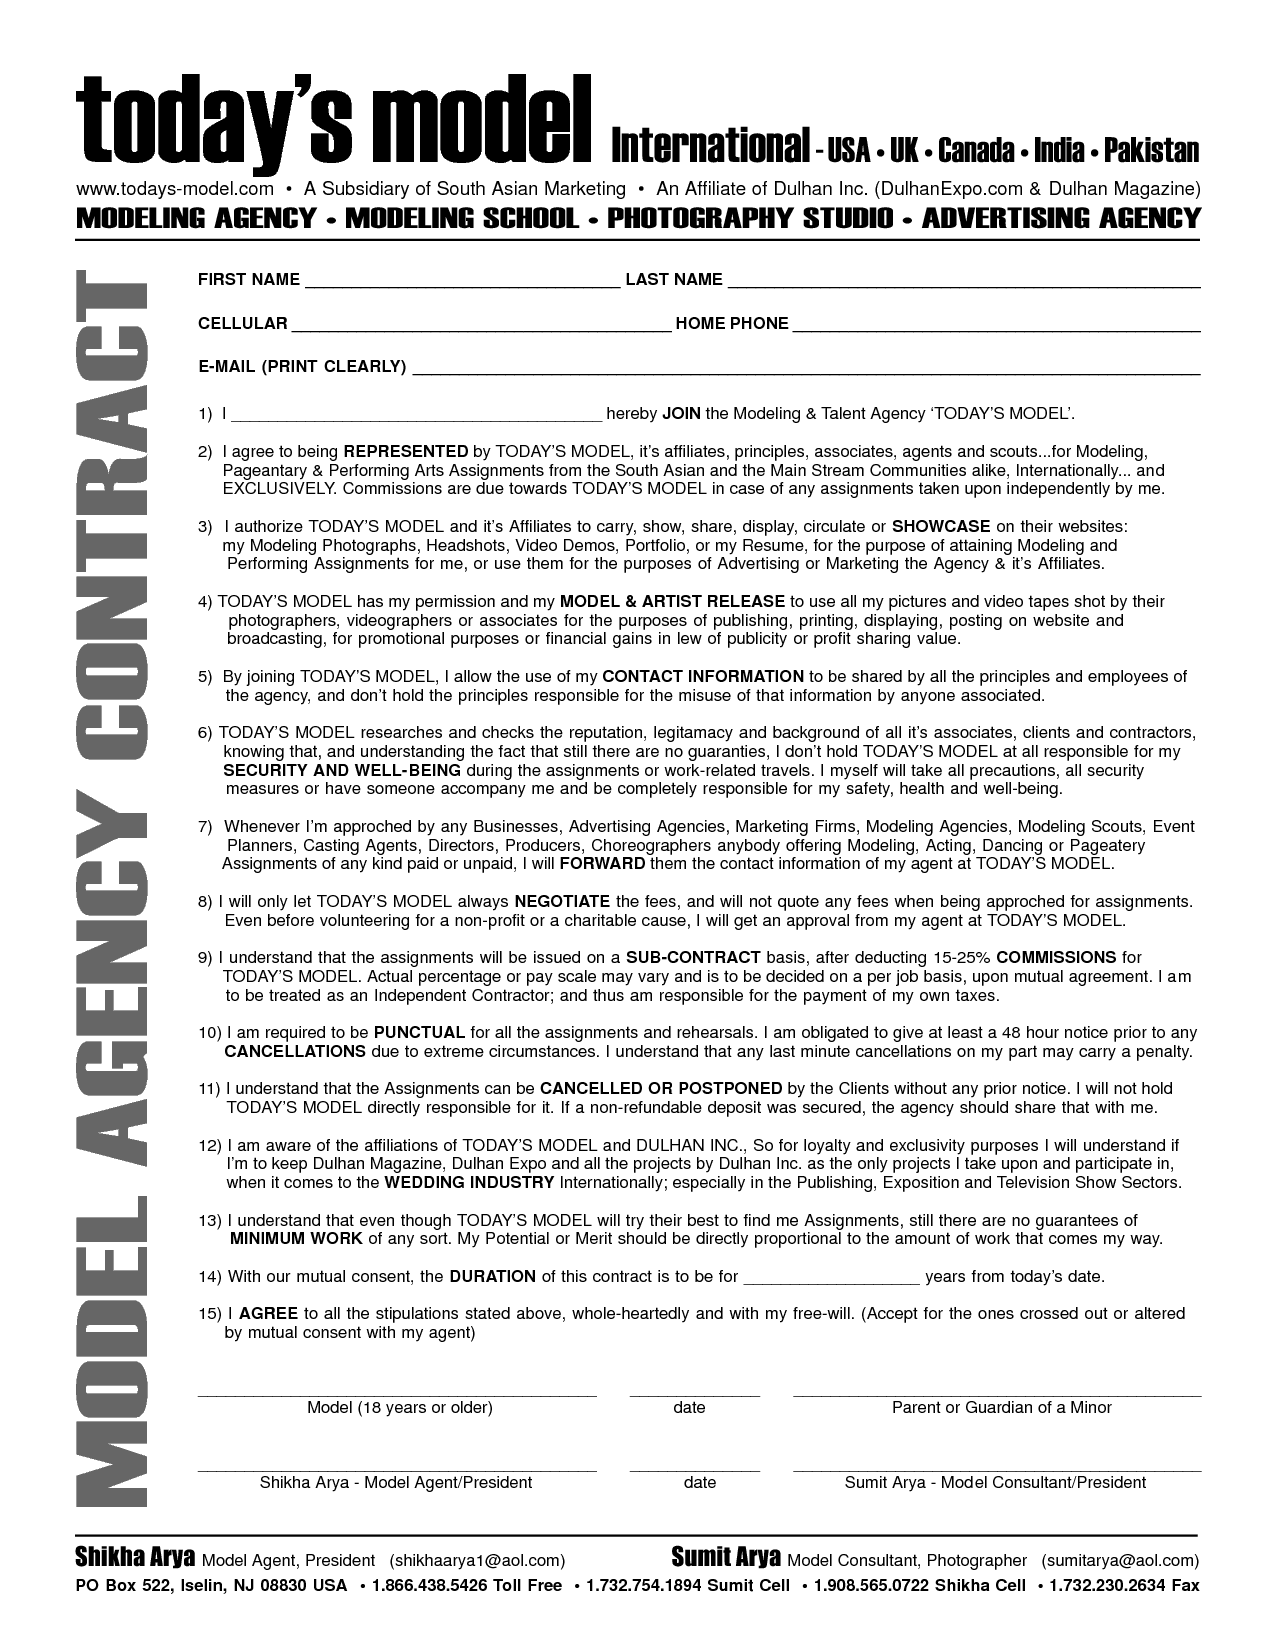 Independent Contractor Agreement Form. Service Contract Sample ...